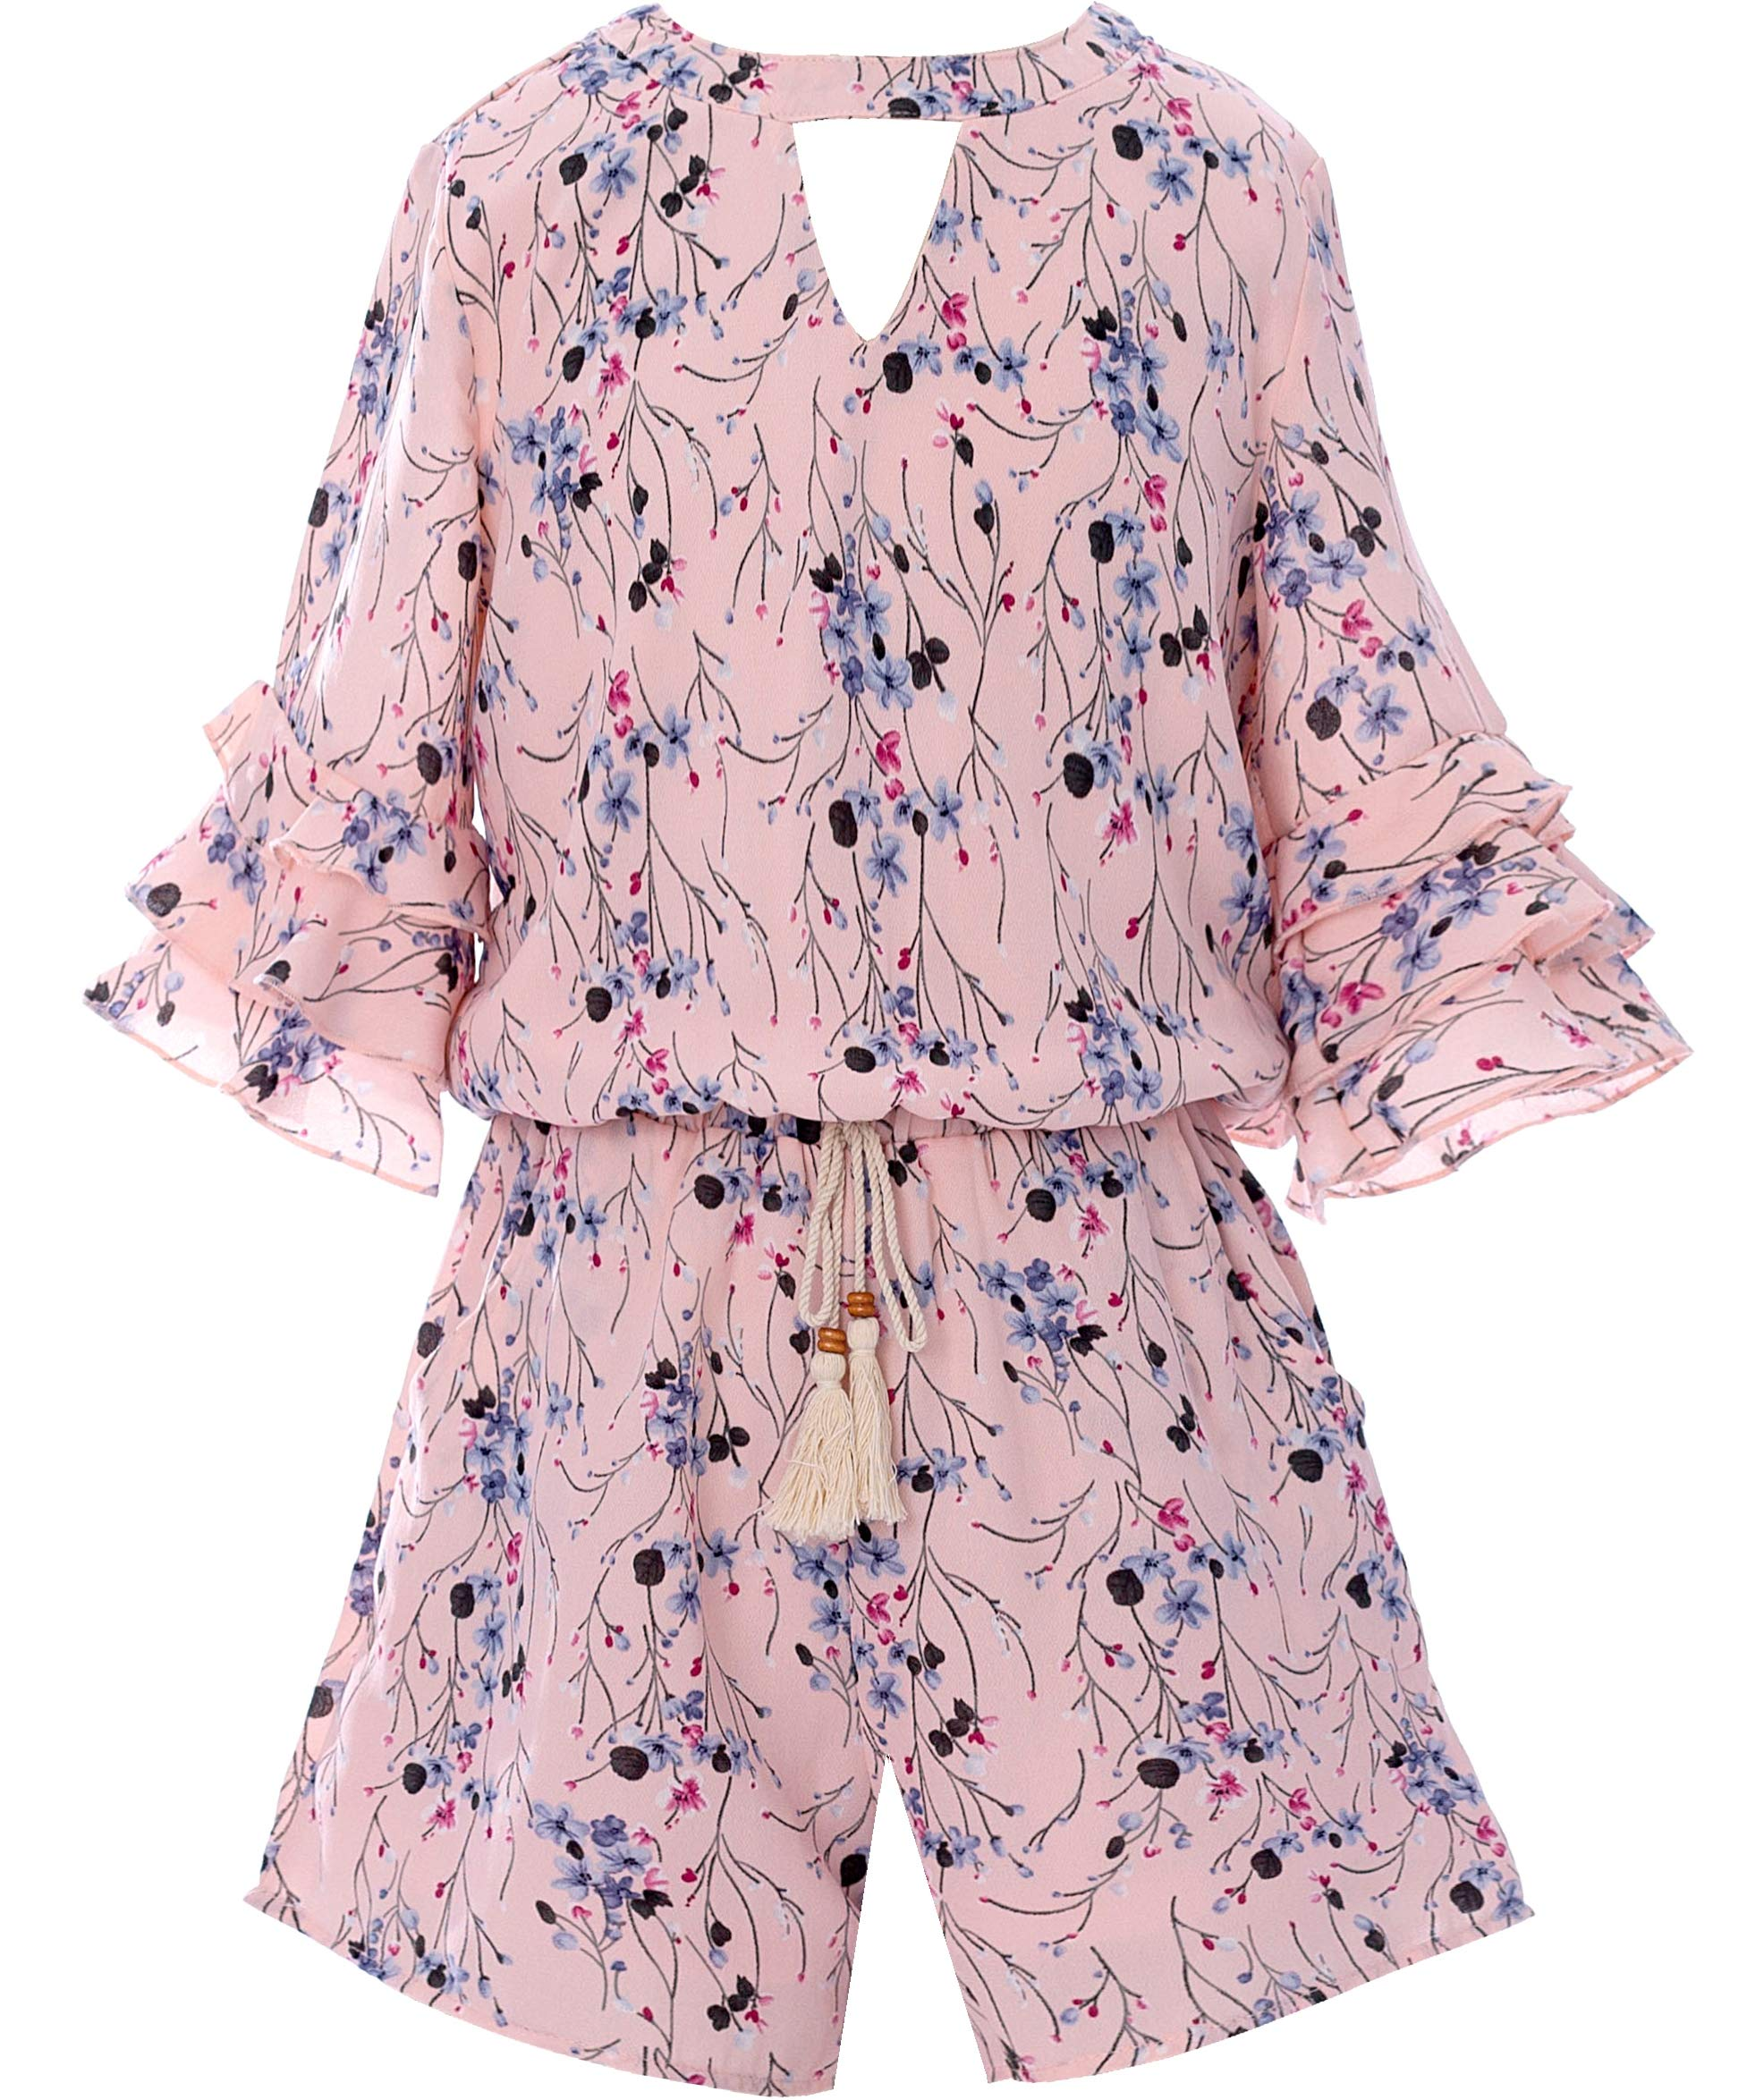 Smukke, Big Girls Floral Printed Tier Ruffle Short Summer Sleeves Romper (Many Options) with Pockets, 7-16 (10, Pink Multi) by Smukke